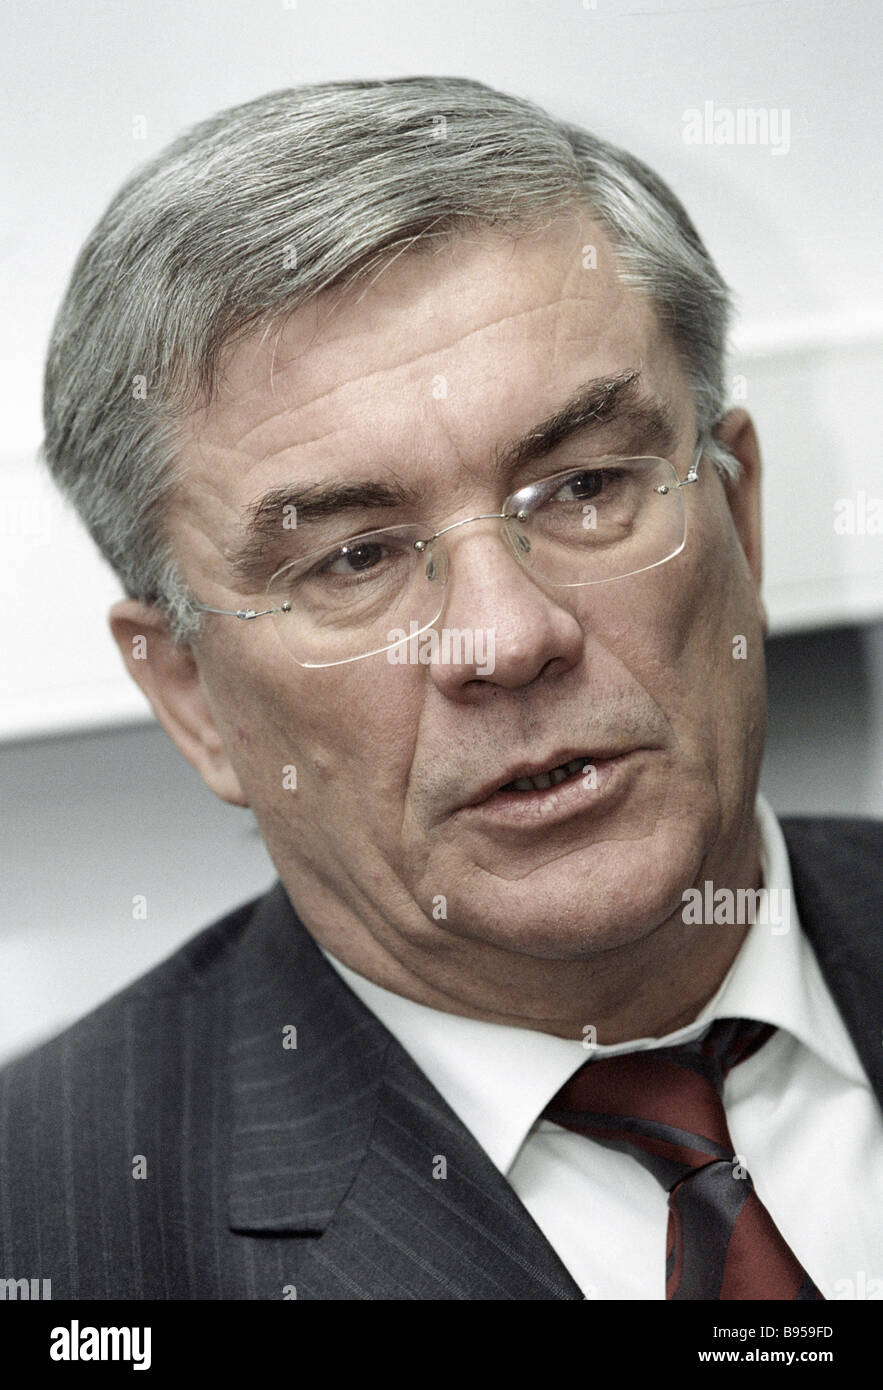 Chairman of the Russian Pension Fund Gennady Batanov Stock Photo